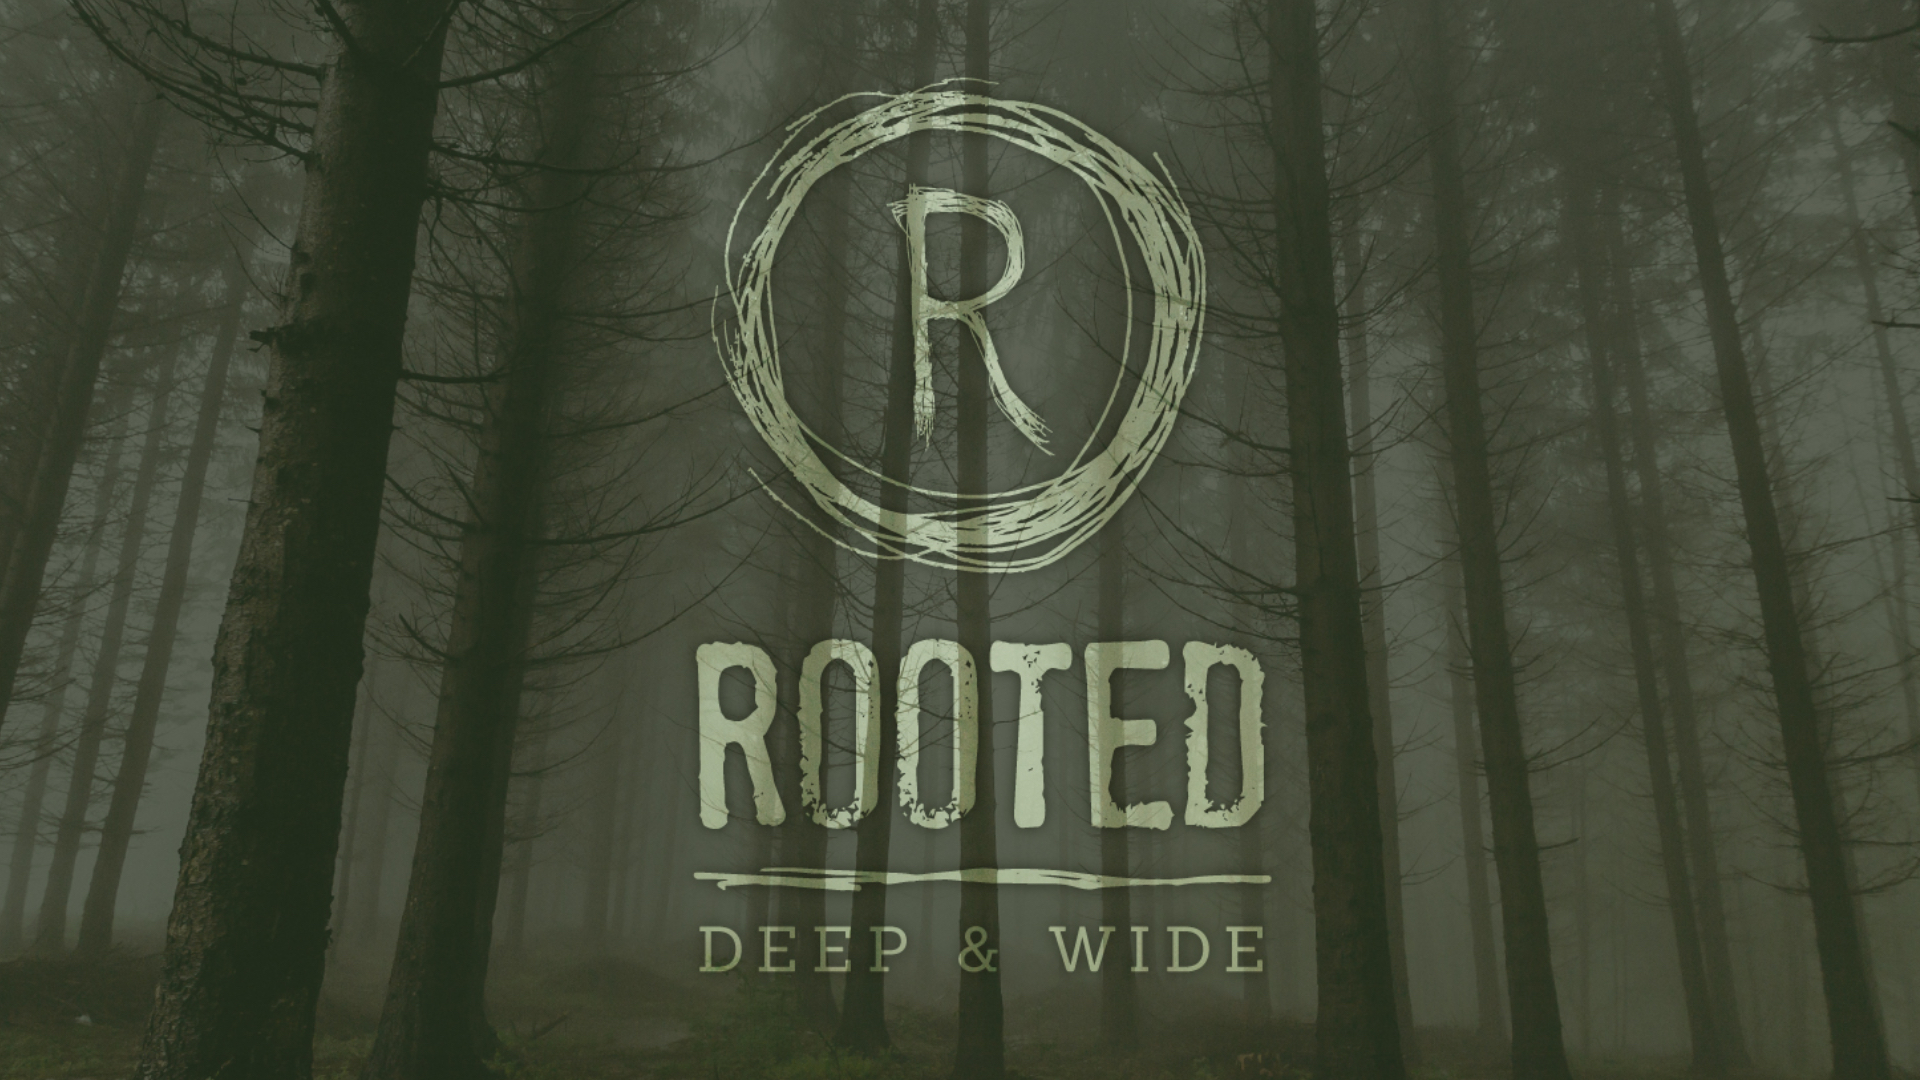 rooted 1920x1080.jpg